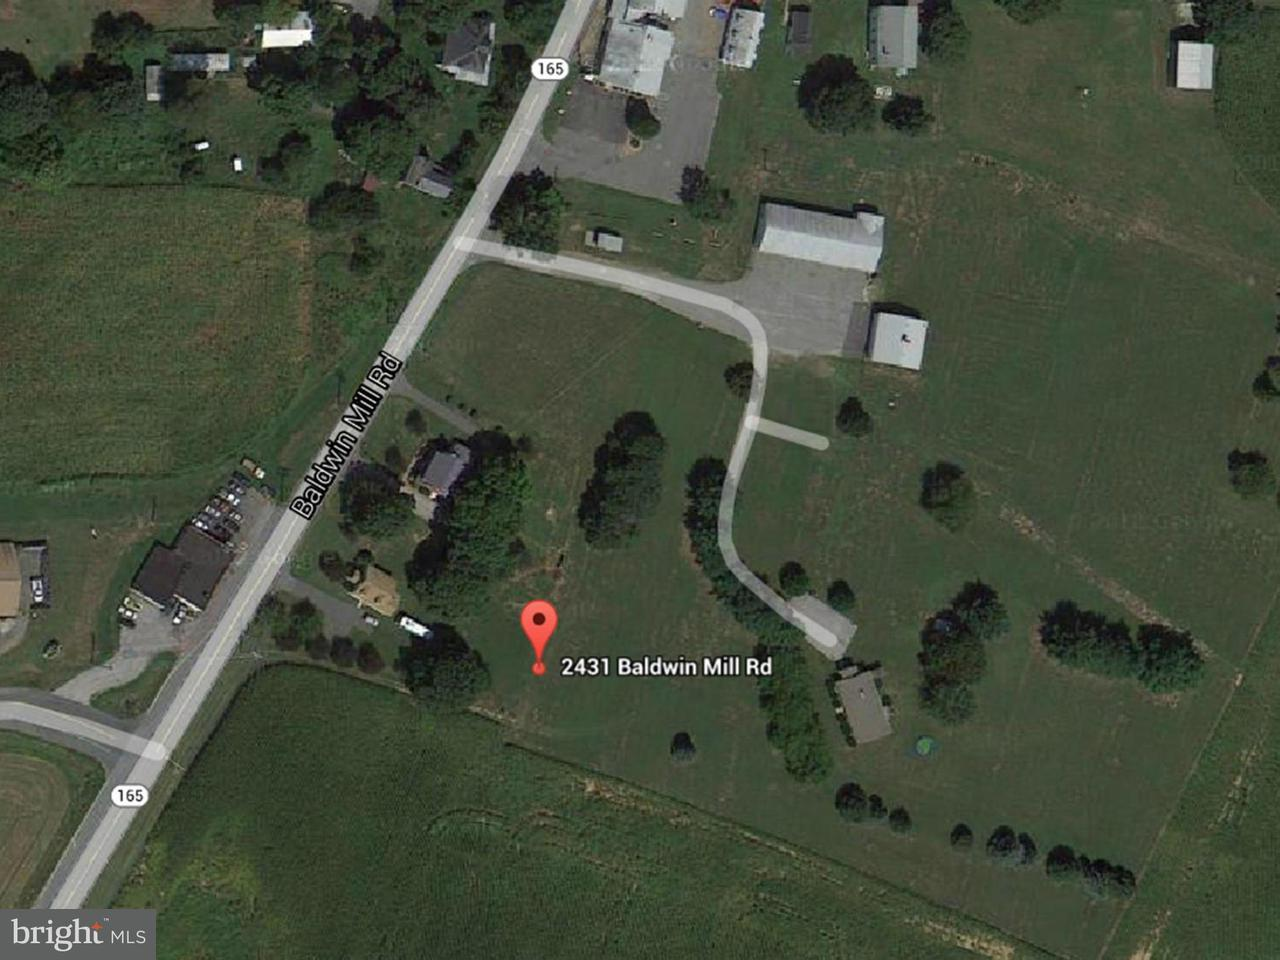 Land for Sale at 2431 Baldwin Mill Rd Fallston, Maryland 21047 United States